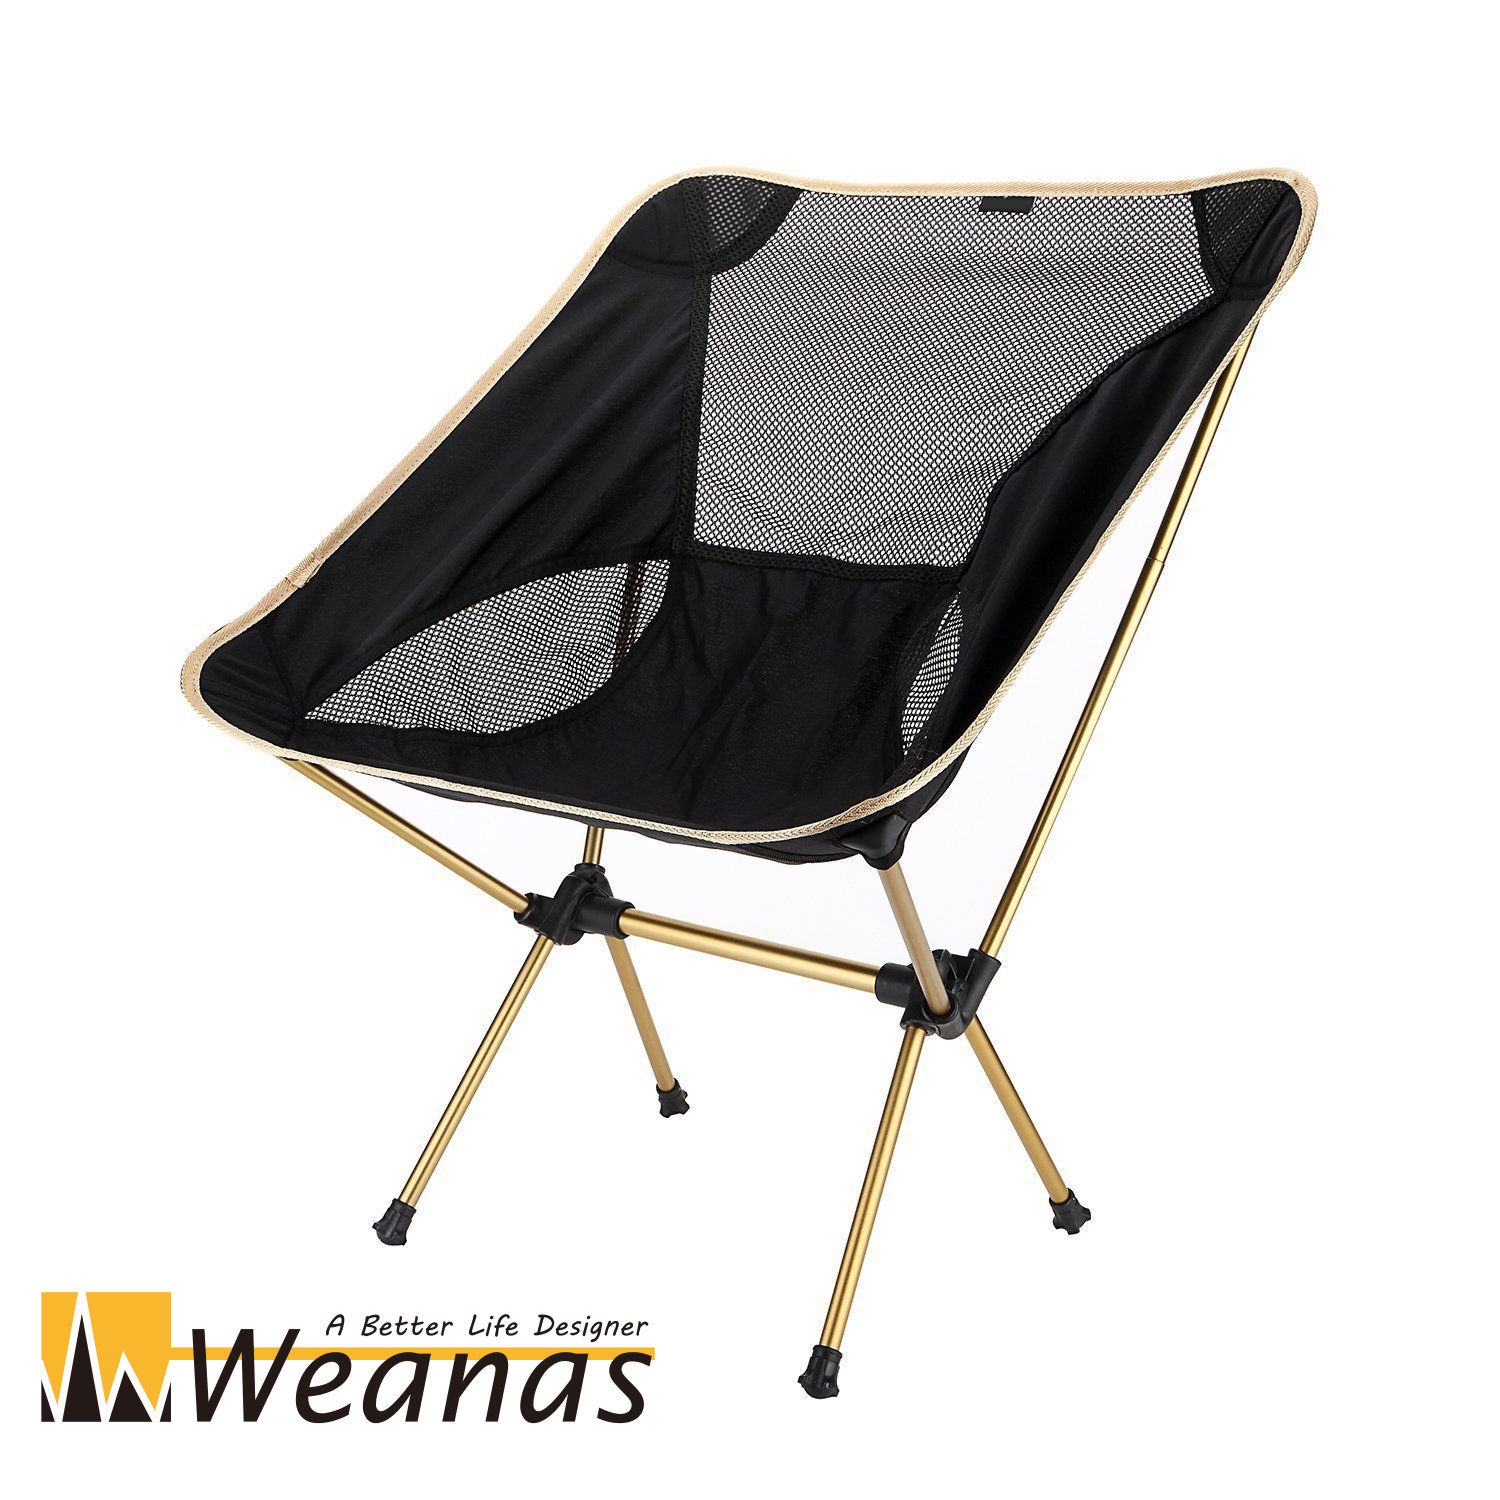 Heavy Duty Outdoor Folding Chairs Weanas Portable Collapsible Heavy Duty Camping Chair